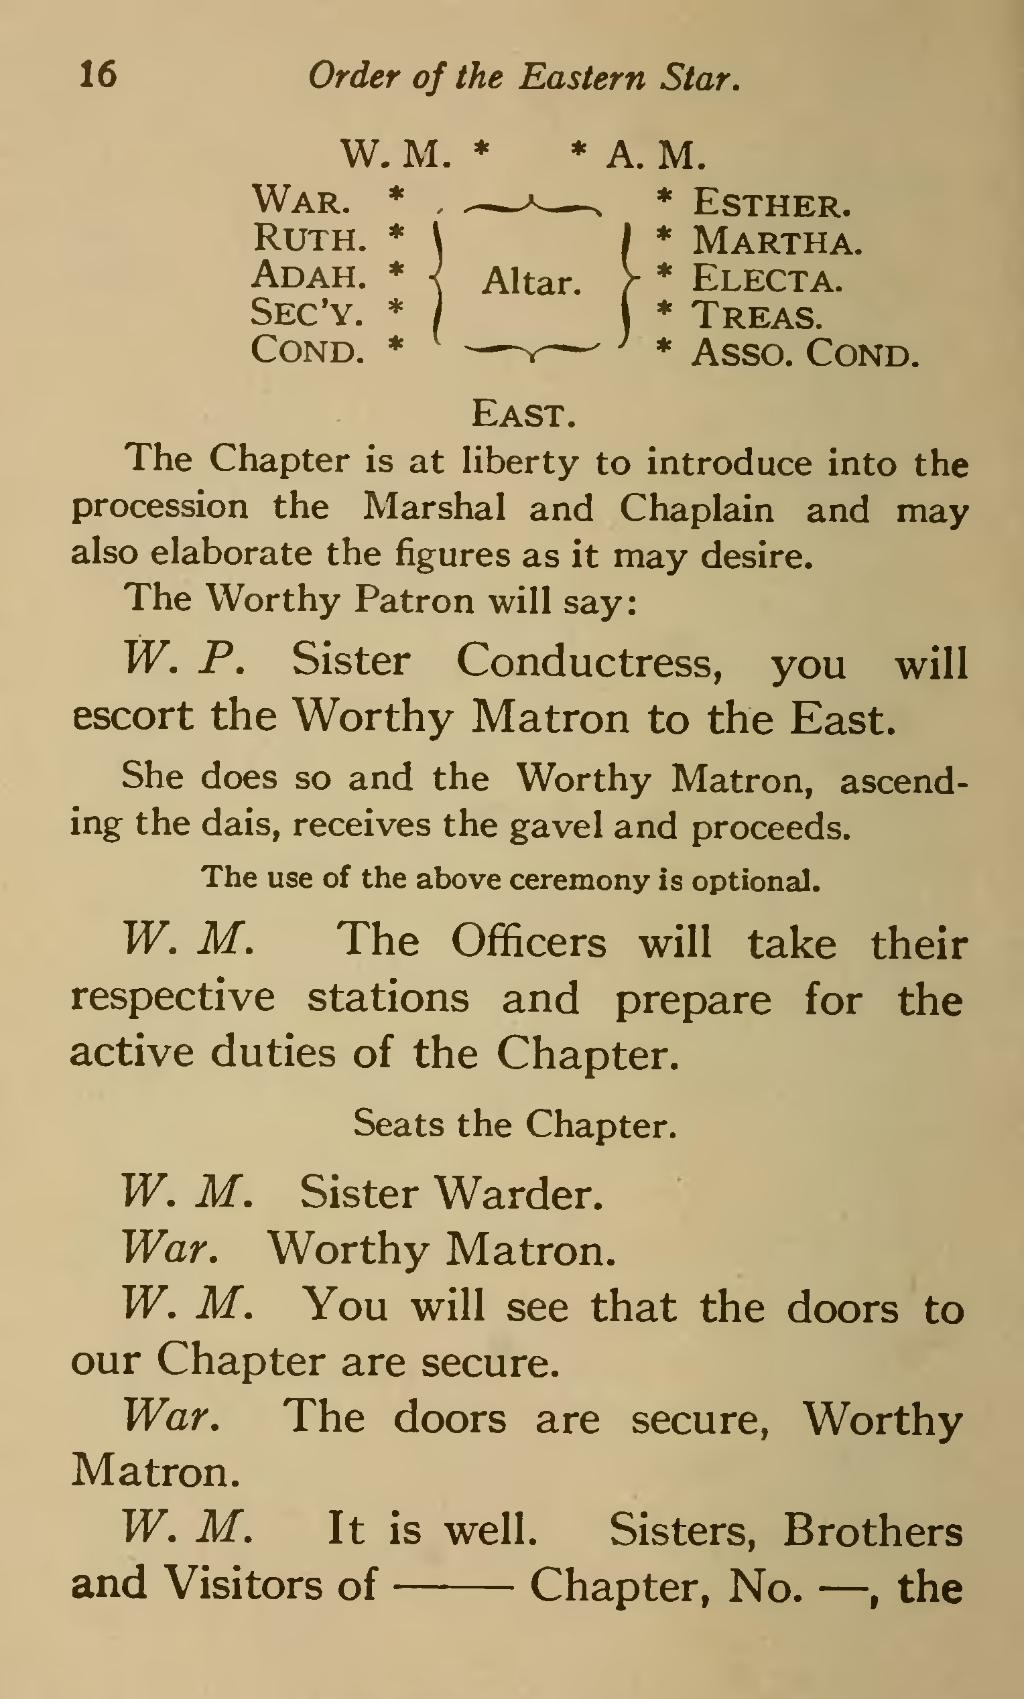 page ritual of the order eastern star  1921  djvu  26